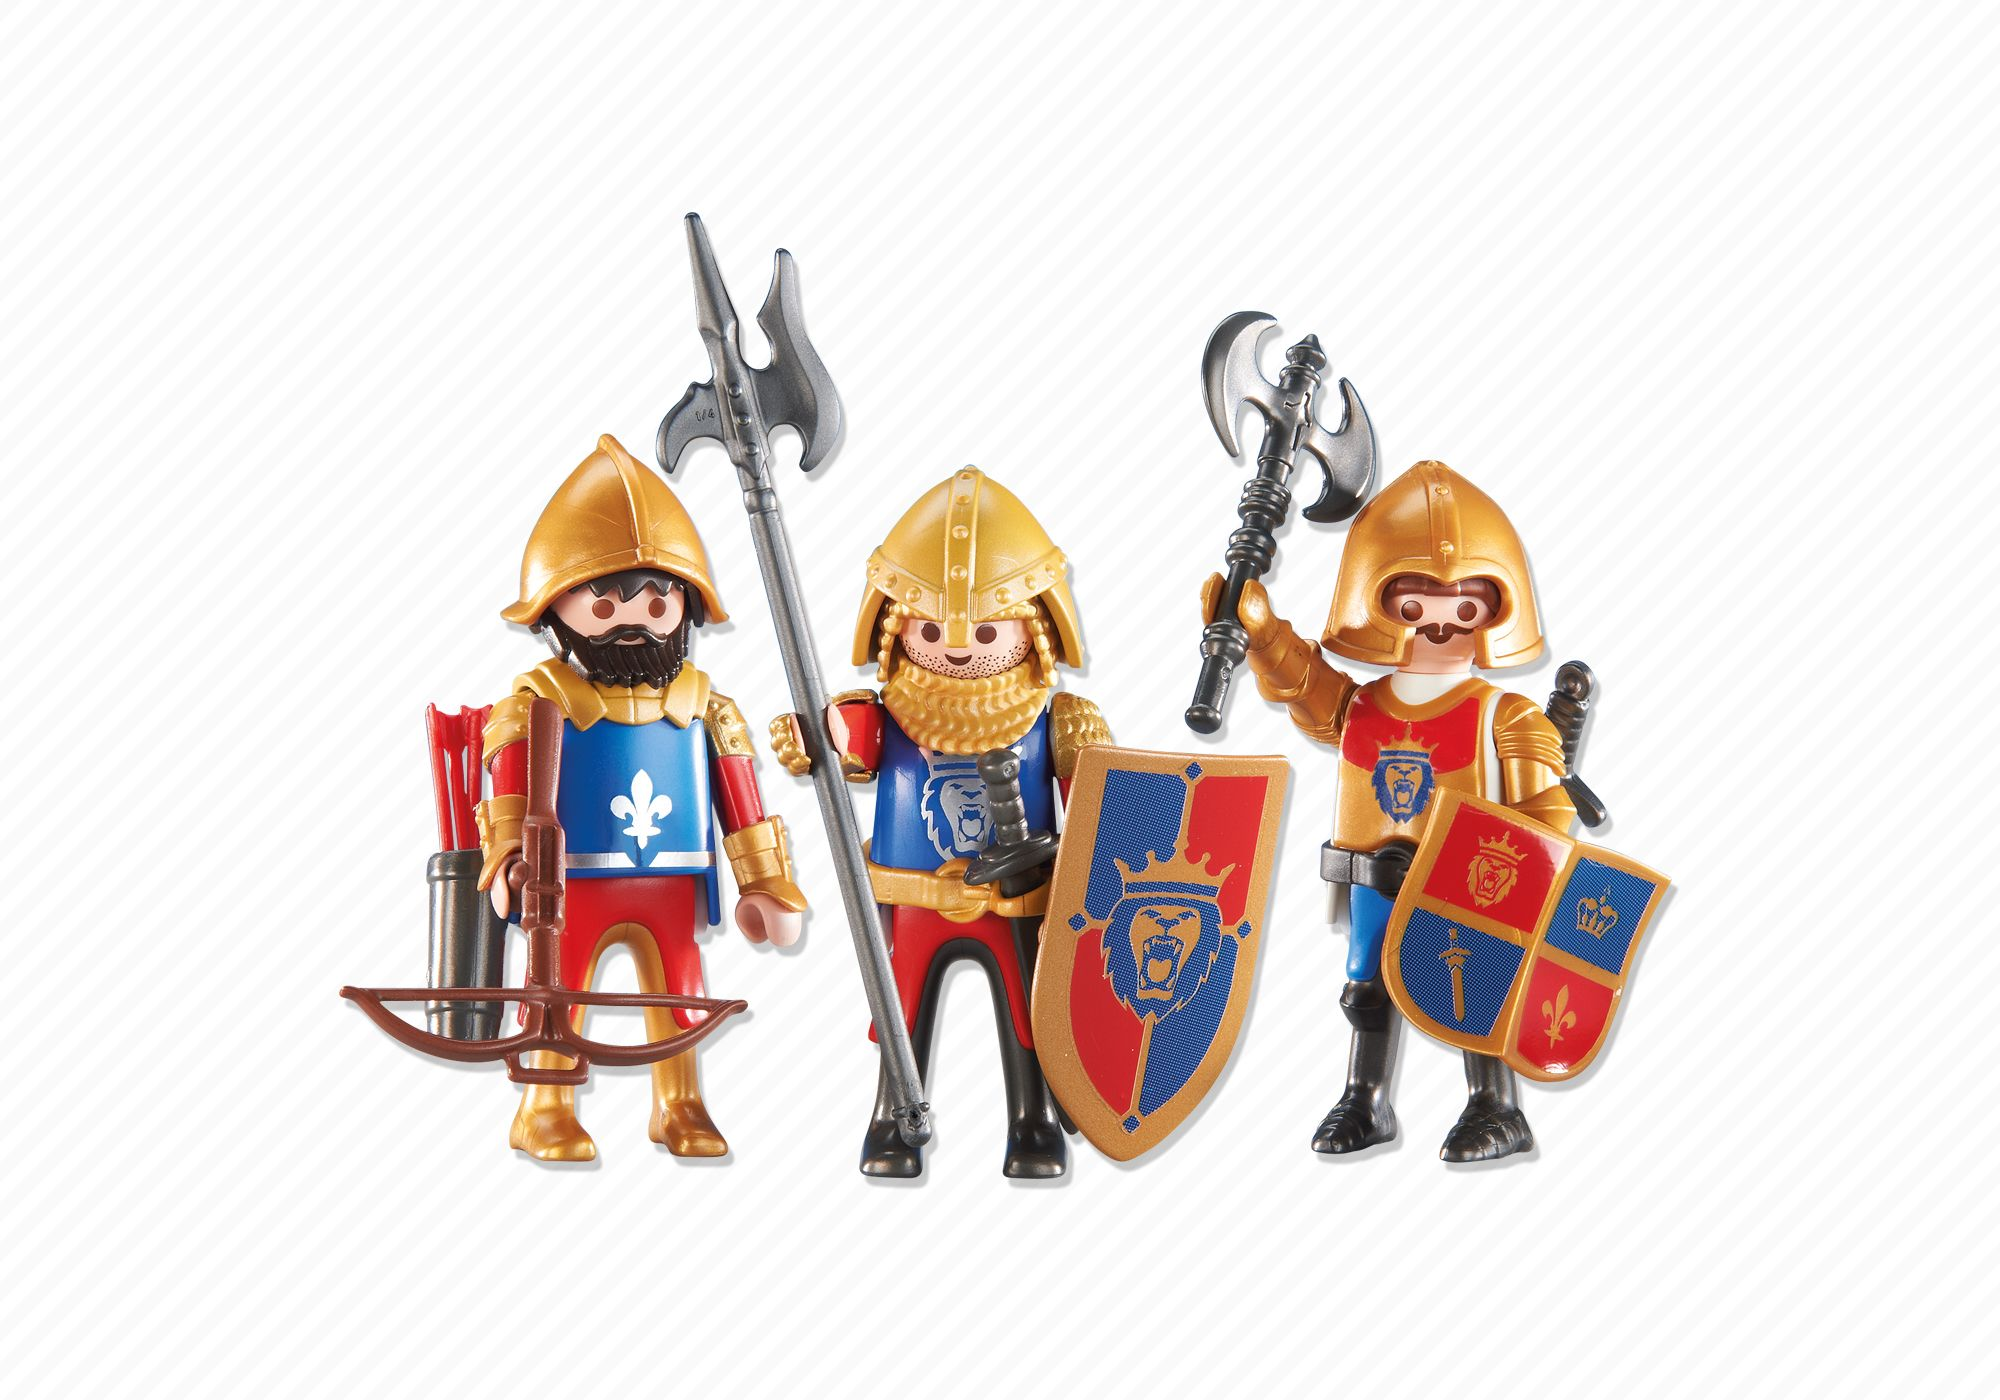 Playmobil set 6379 3 lion knights klickypedia for Playmobil caballeros